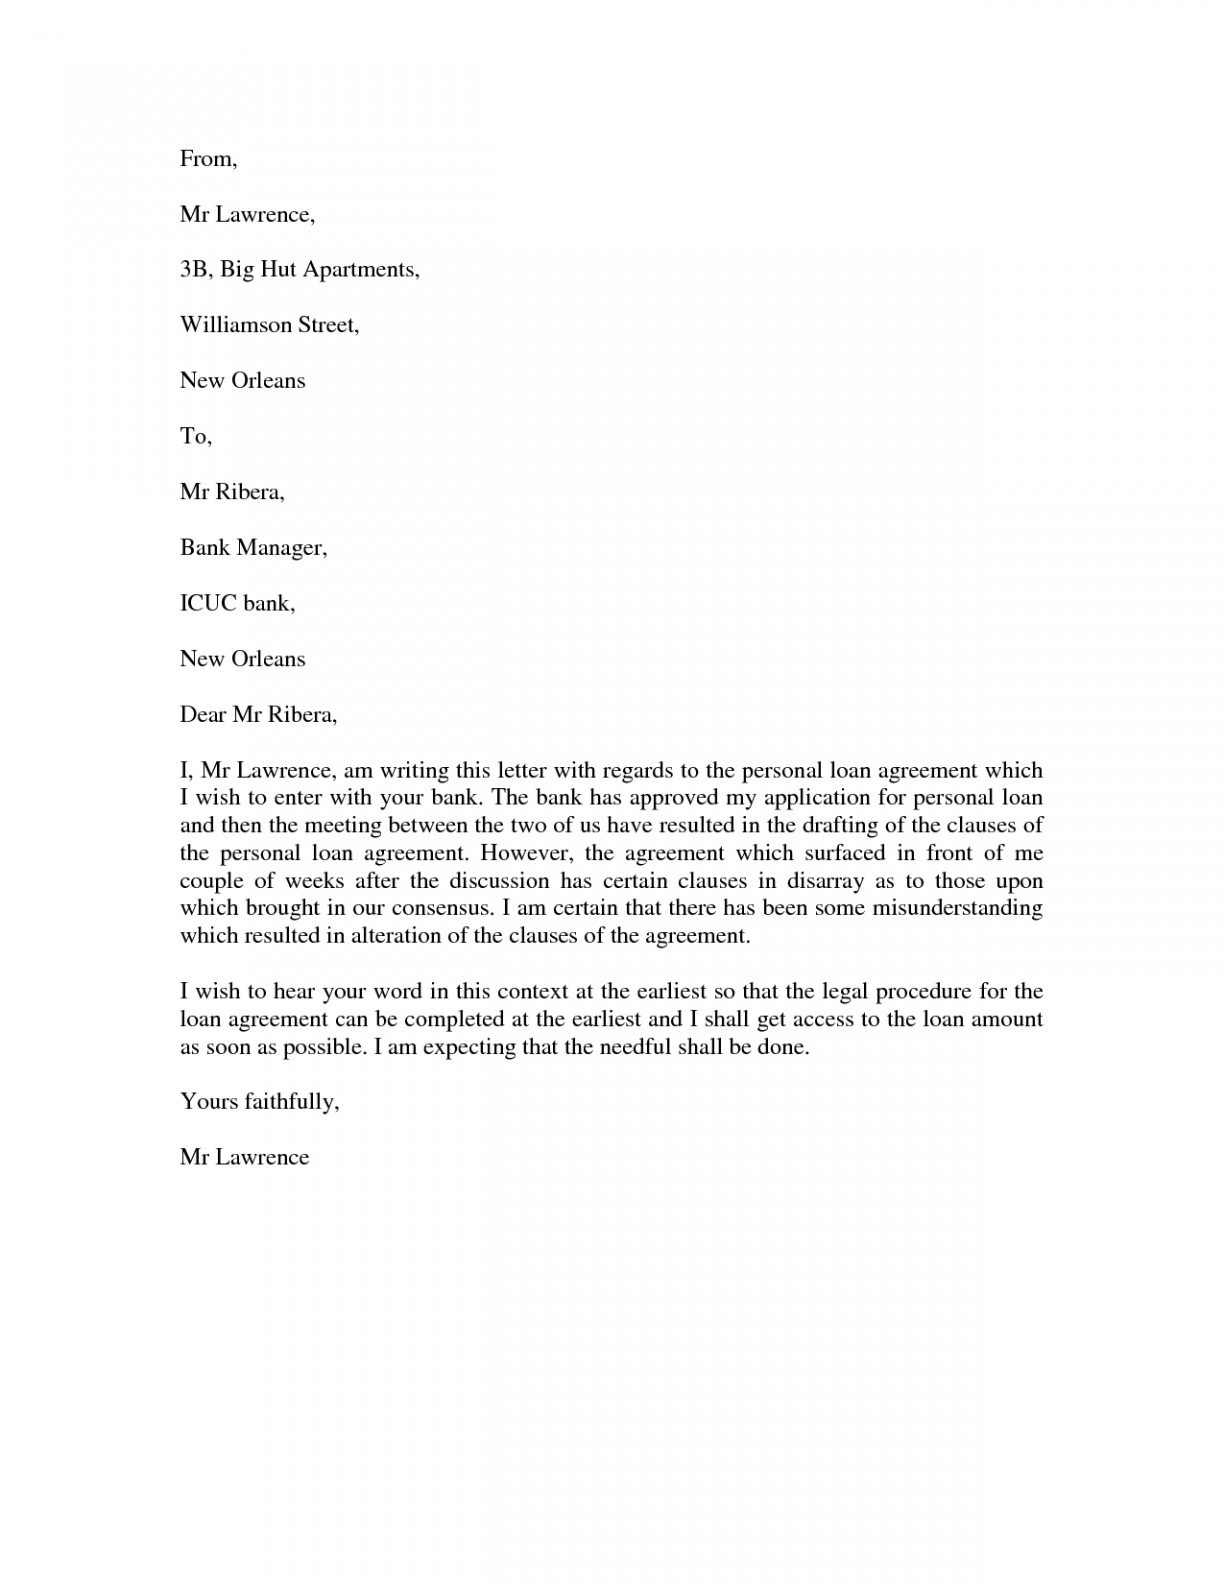 Personal Loan Letter Template - Sample Loan Request Letter format New Letter format Bank New